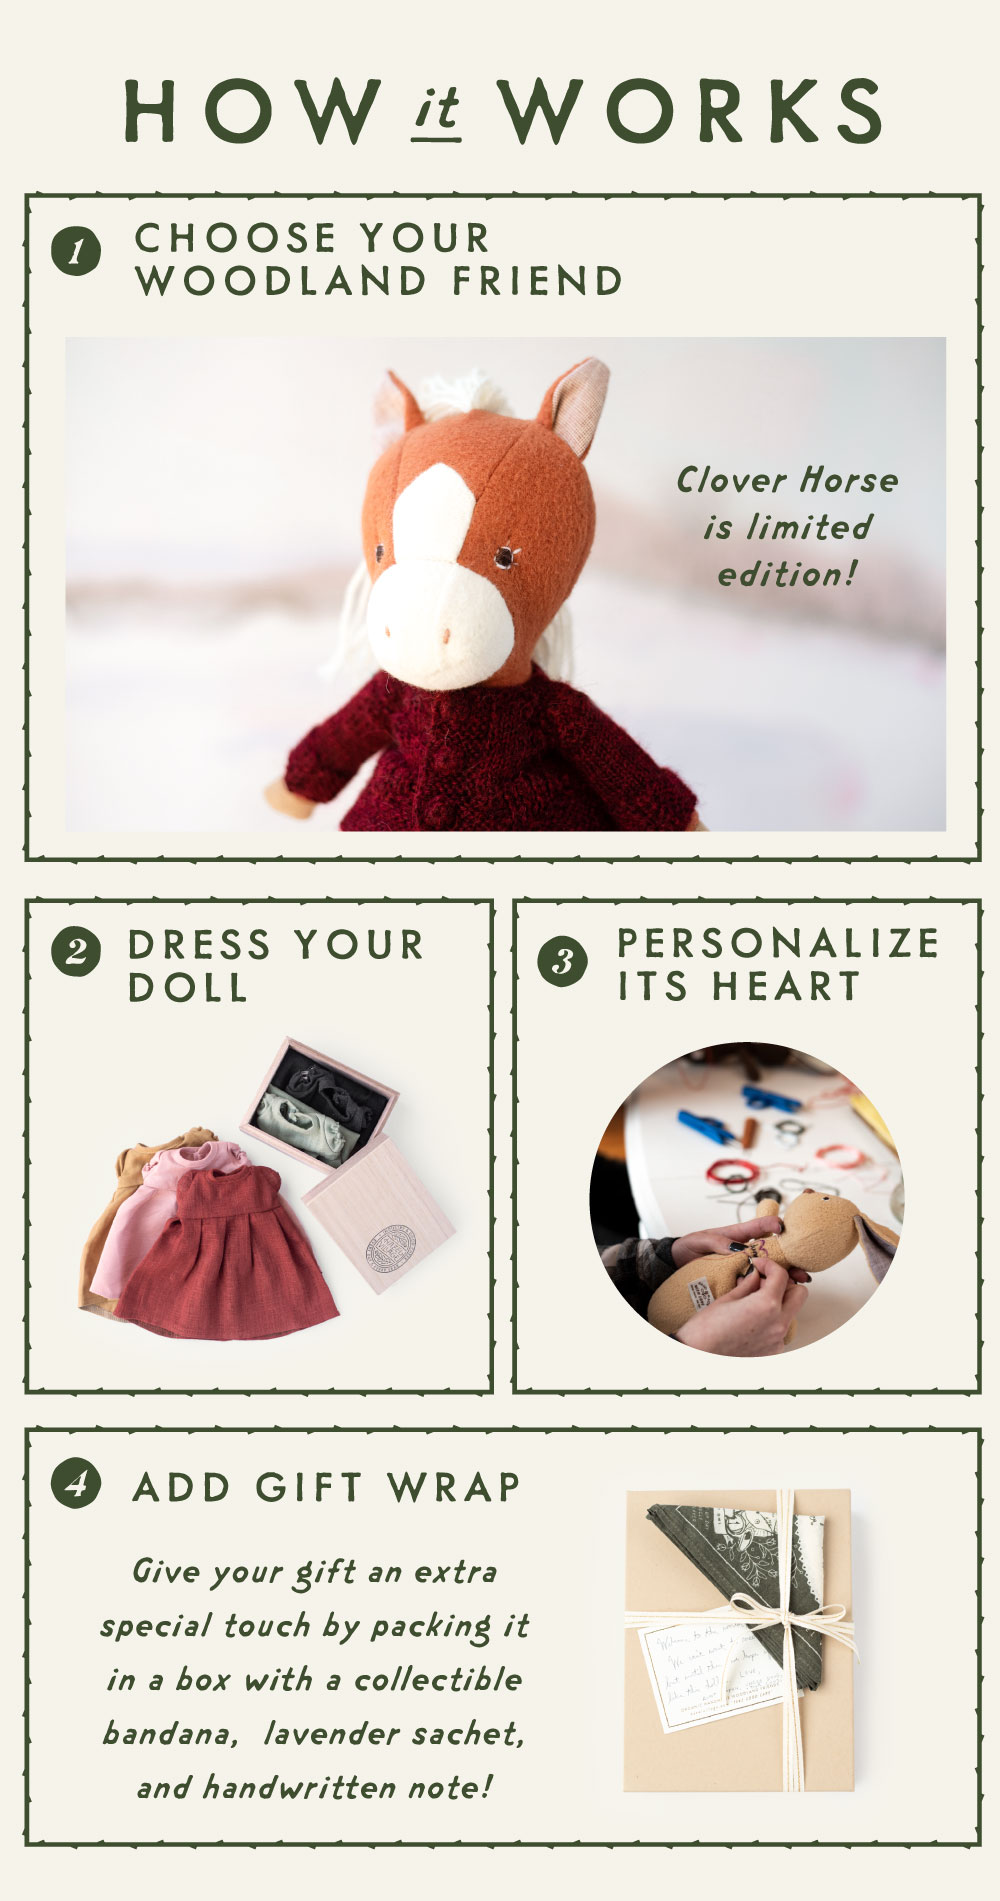 How it works: 1. choose your woodland friend. clover horse is limited edition! 2. dress your doll. 3 Personalize its heart. 4. Add gift wrap: give your gift an extra special touch by packing it in a box with a collectible bandana, lavender sachet, and handwritten note!